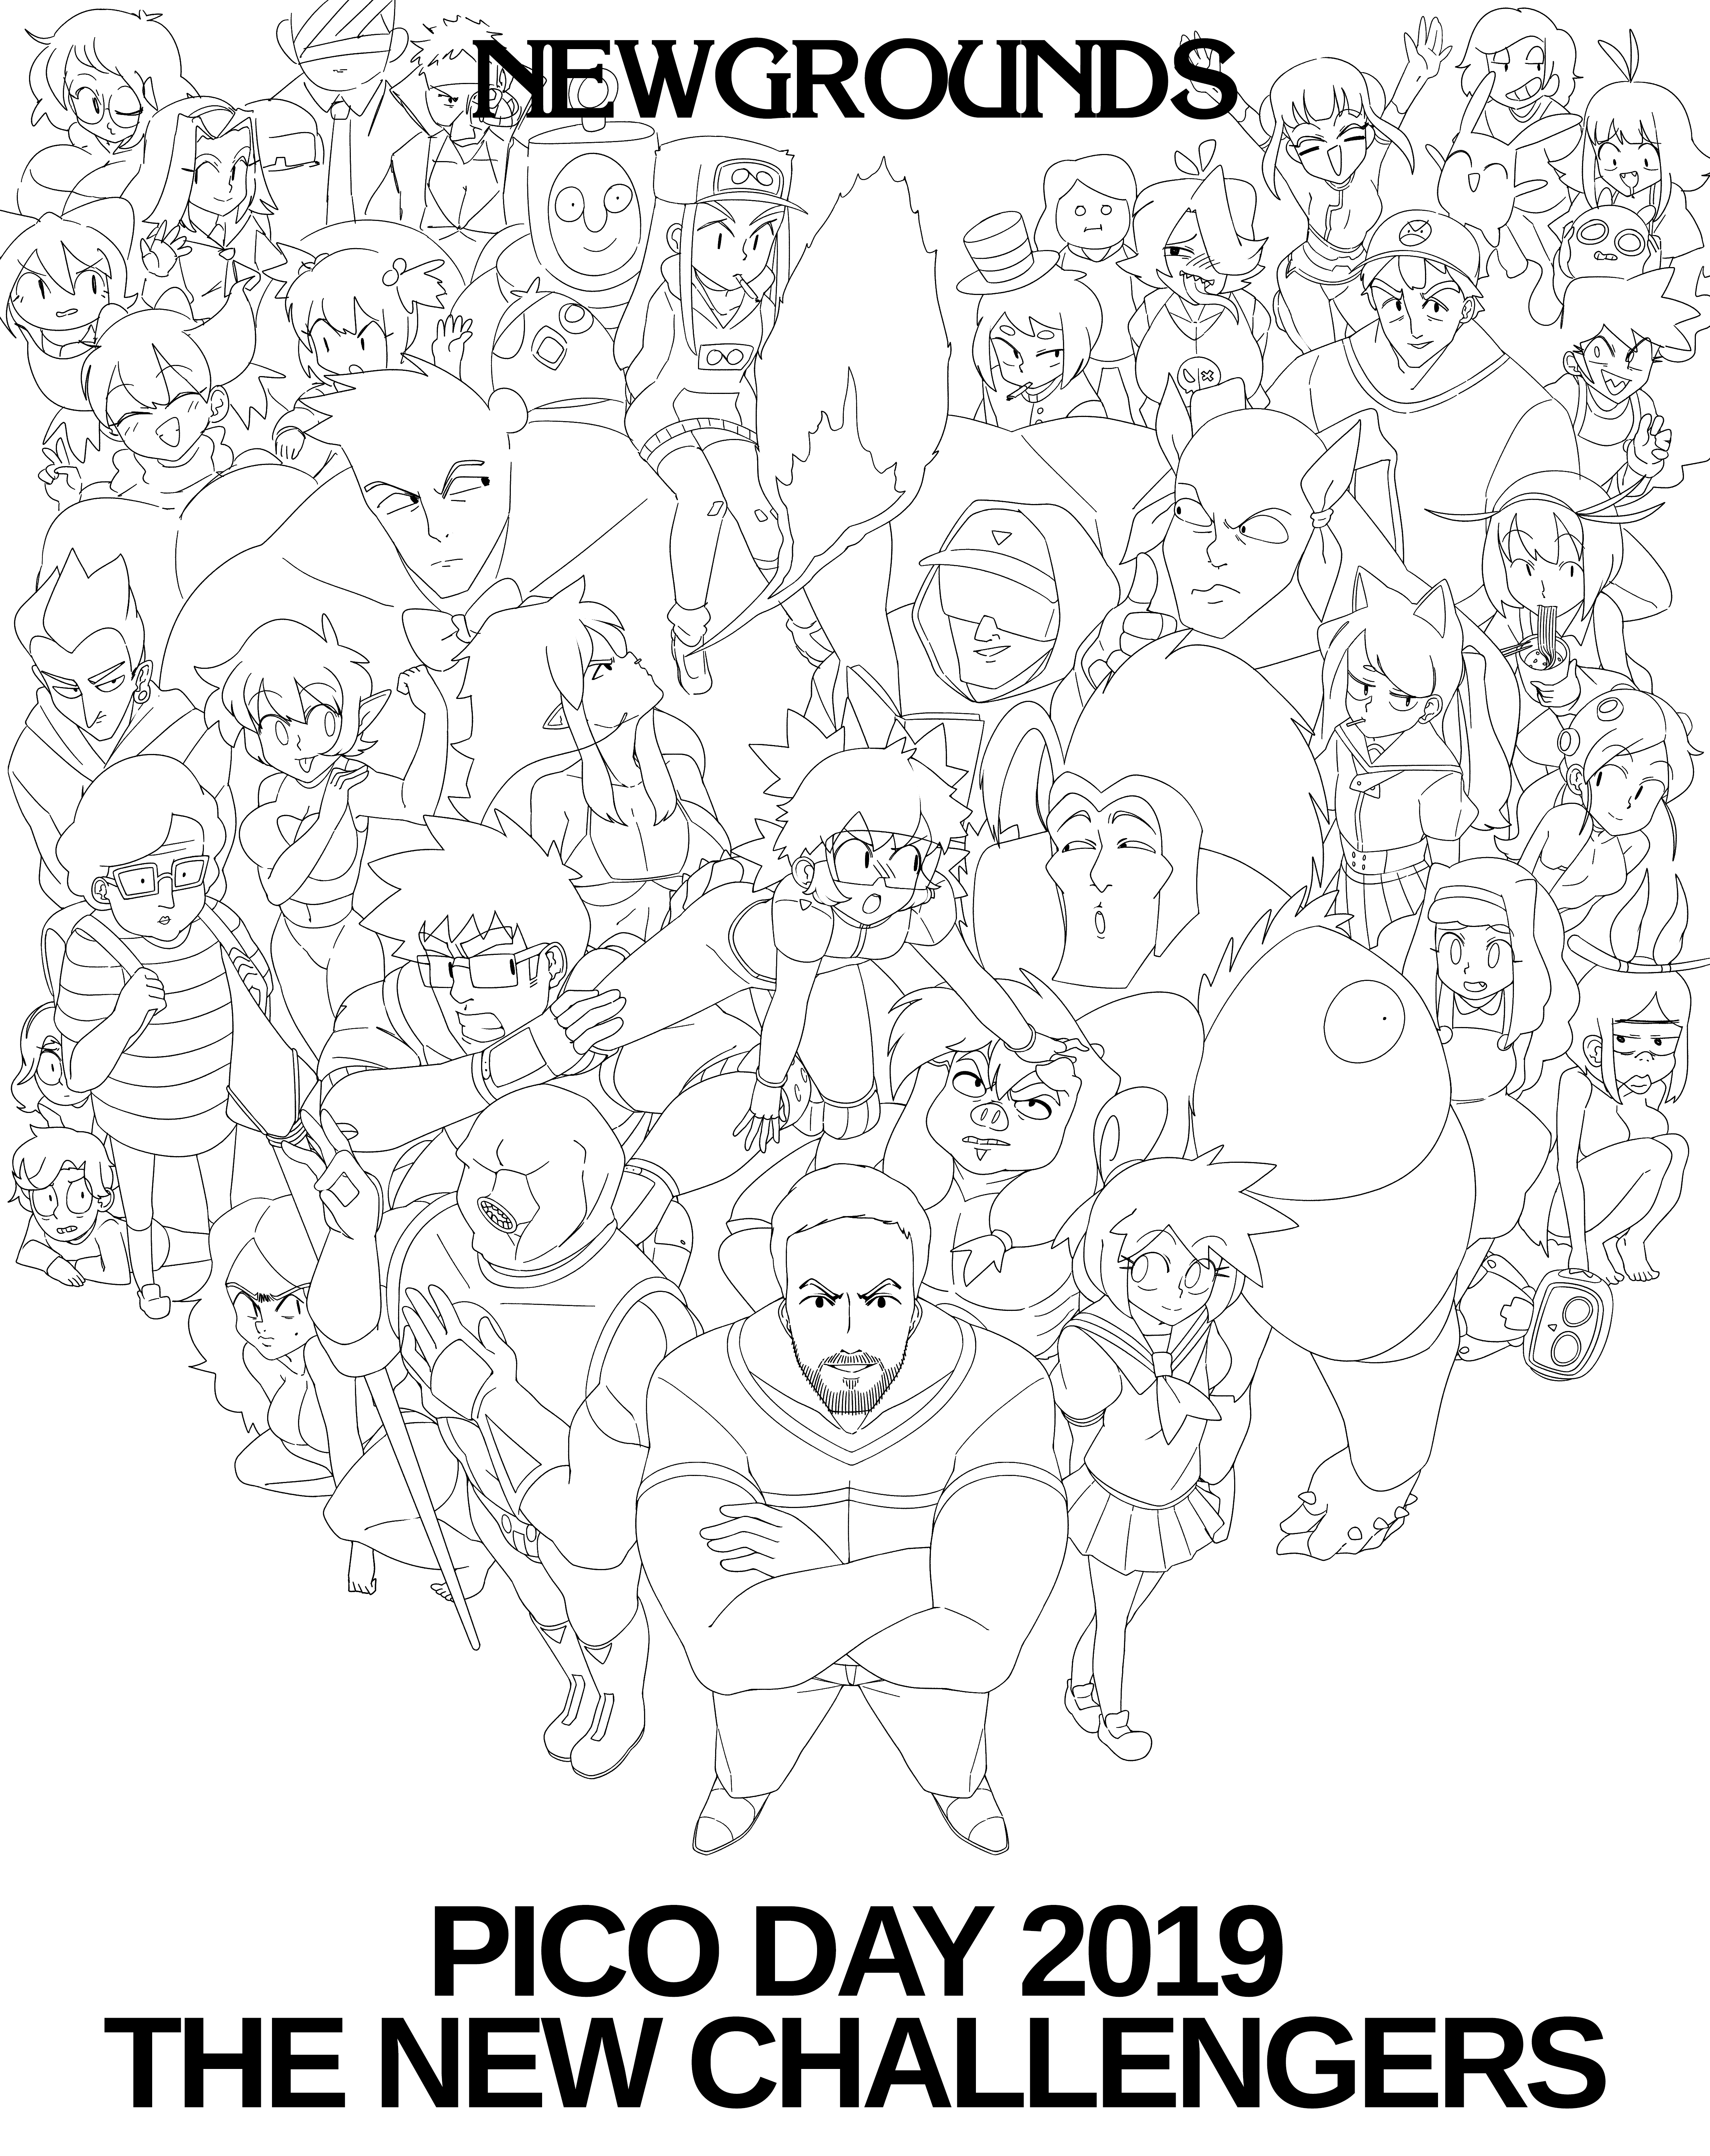 Pico Day 2019: The New Challengers